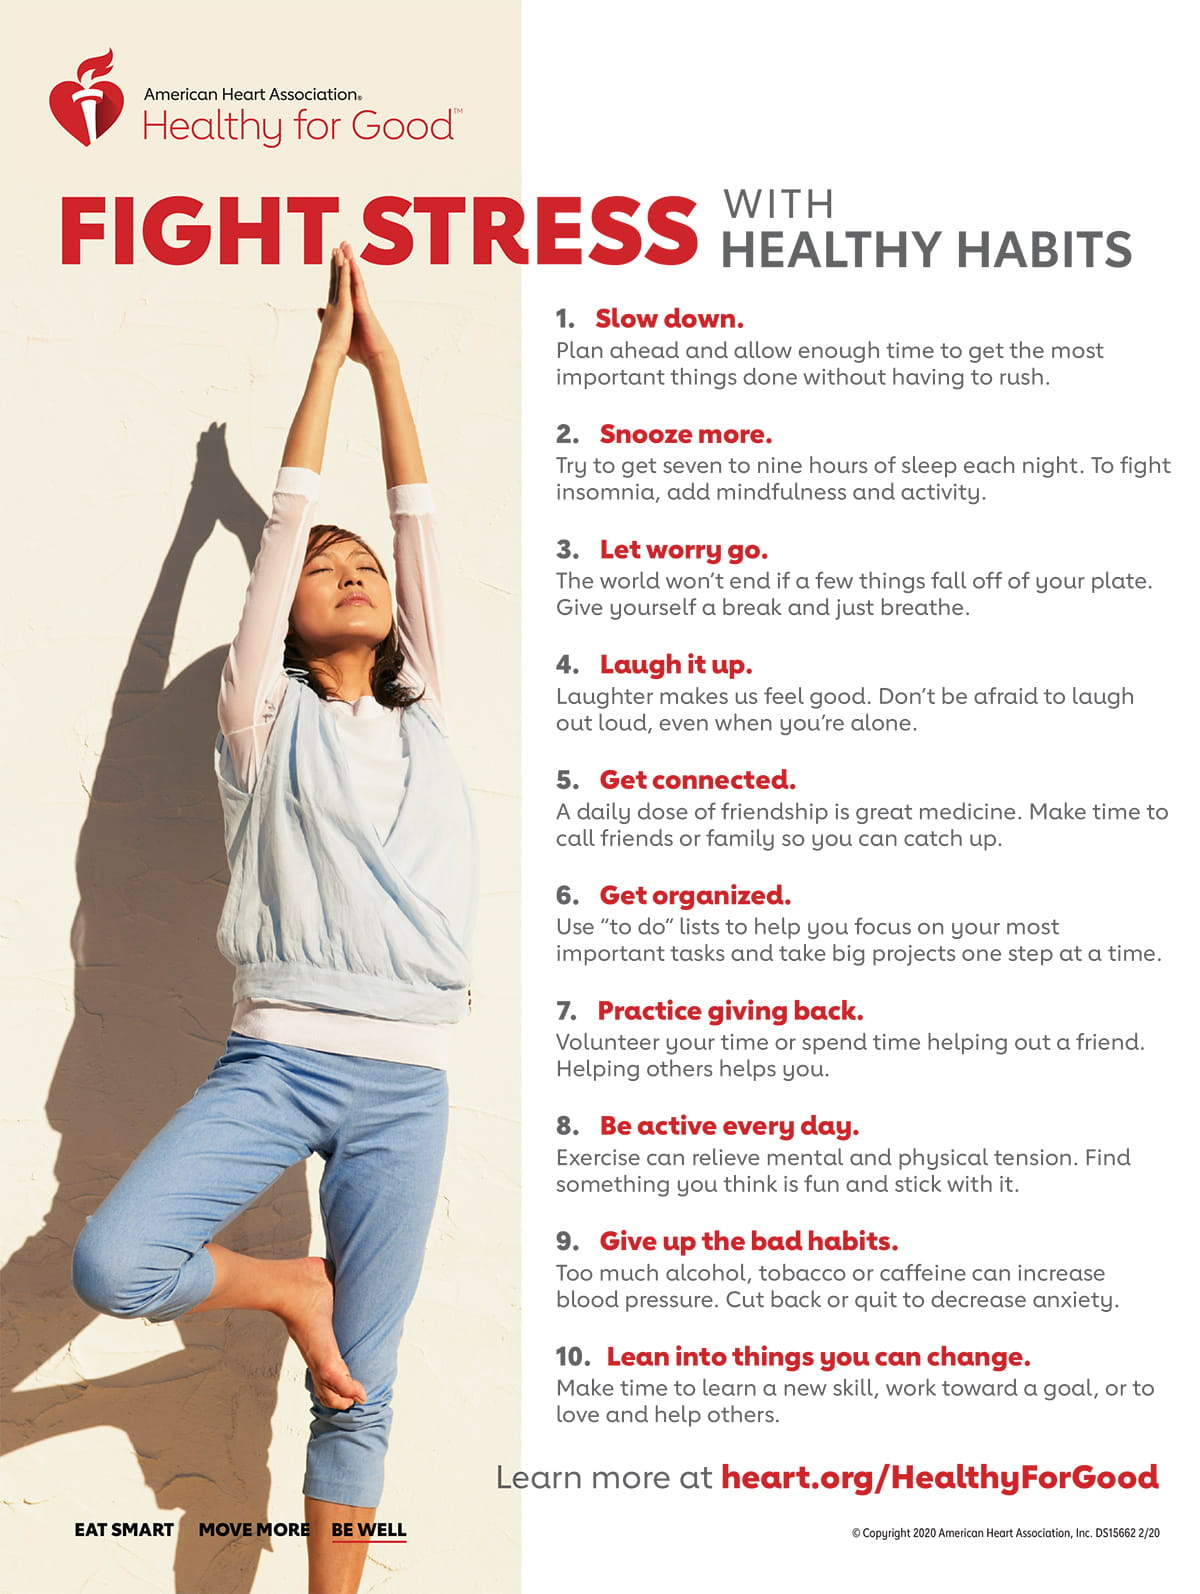 Fight Stress with Healthy Habits infographic